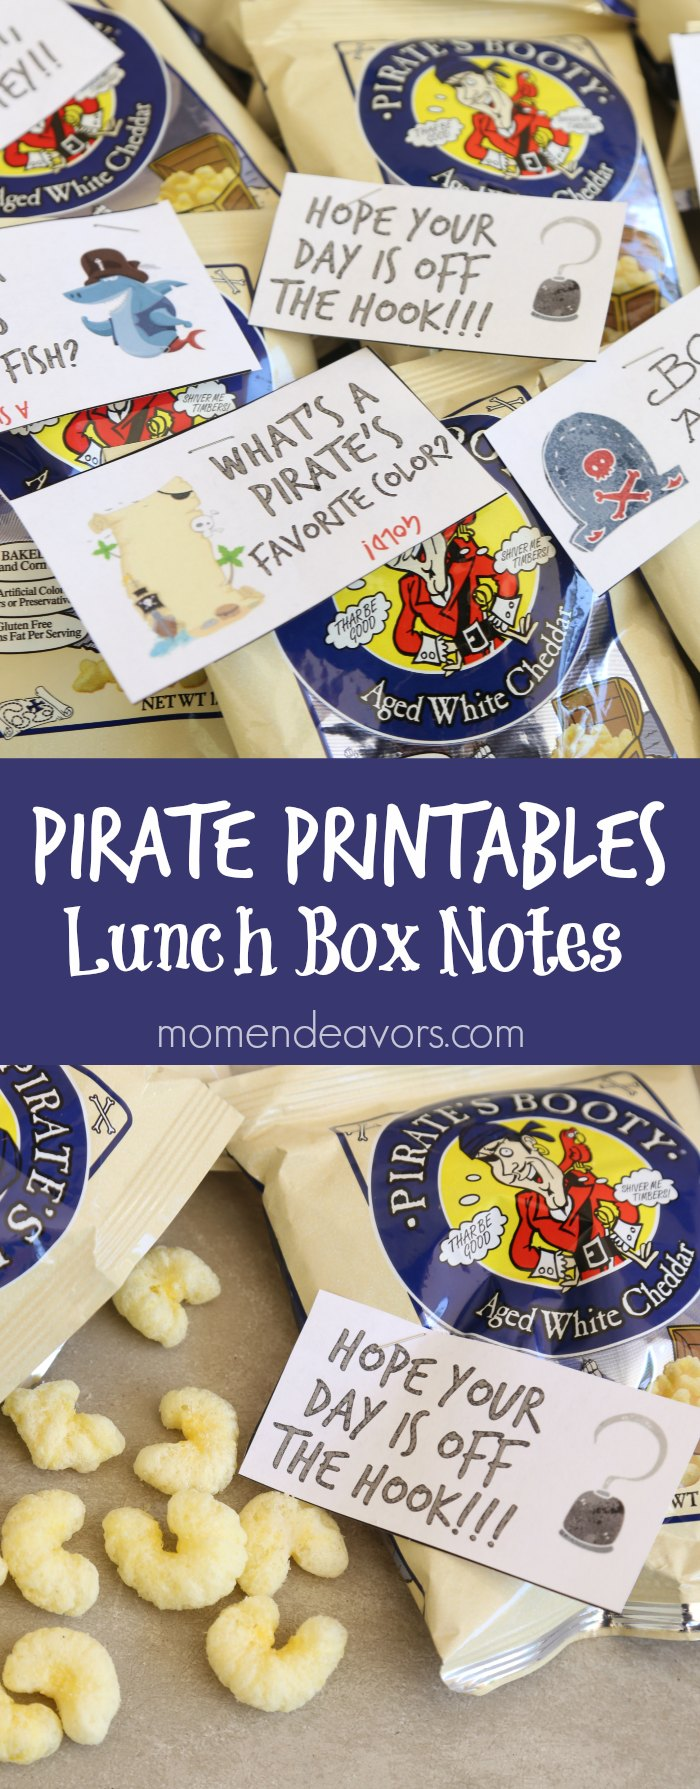 Pirate Printables Lunch Box Notes